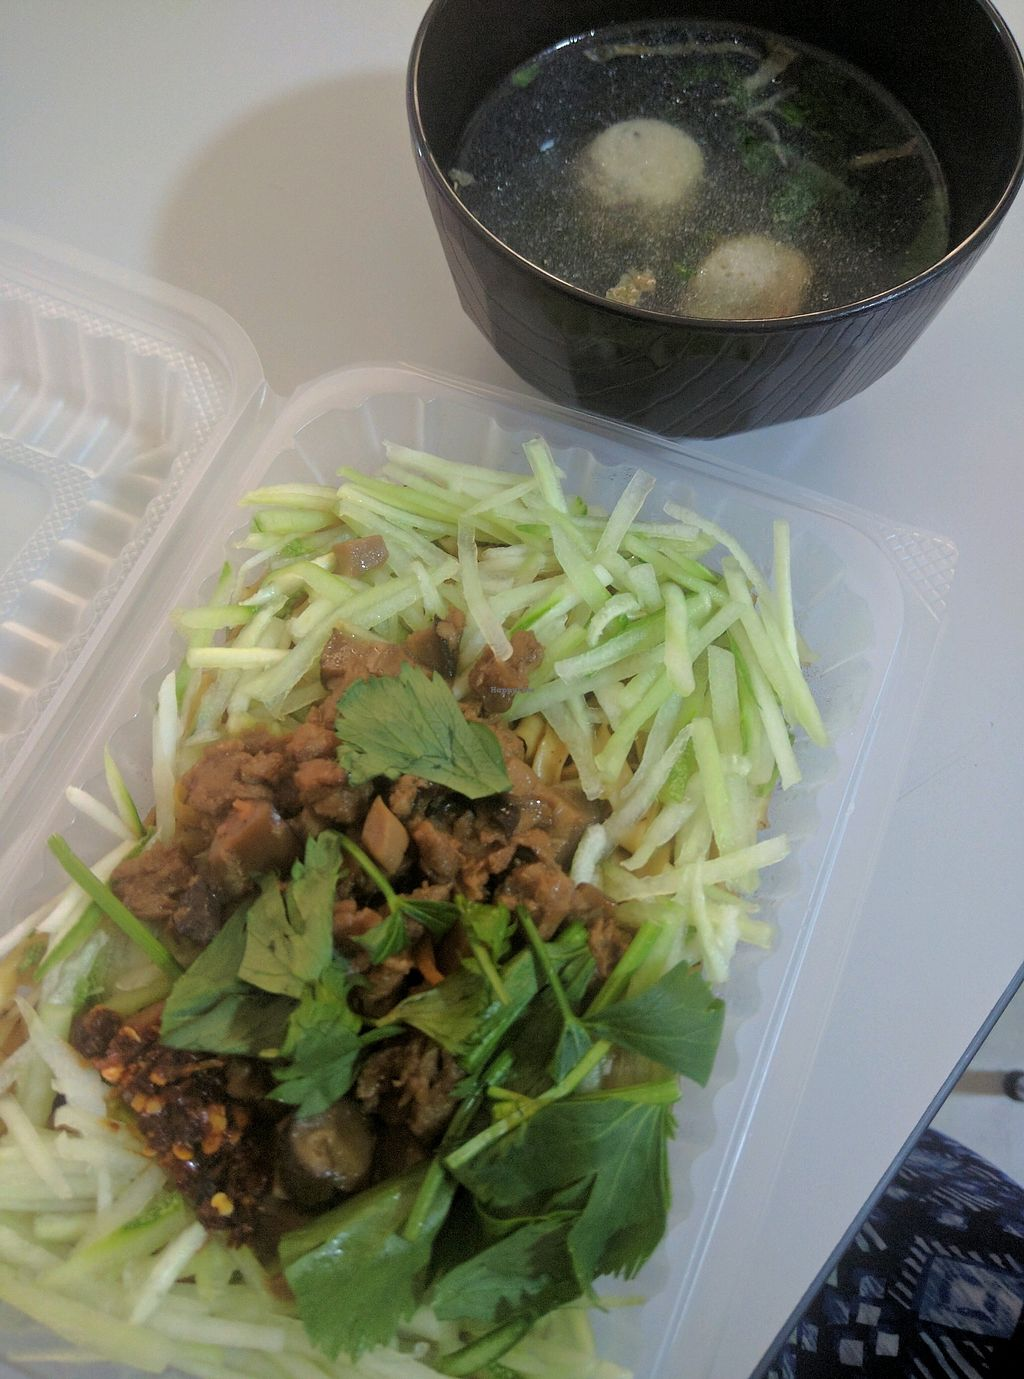 "Photo of Green Rabbit Vegetarian Kitchen  by <a href=""/members/profile/Summer_Tan"">Summer_Tan</a> <br/>N3: Tasty Spicy Dry Noodle - RM7.90 Good noodles, with minced soy mock meat and mushrooms. Not spicy at all, flavour is just ok. Well balanced with the fresh herbs and cucumbers. Comes with a side of soup that is just ok <br/> February 3, 2018  - <a href='/contact/abuse/image/77842/354501'>Report</a>"